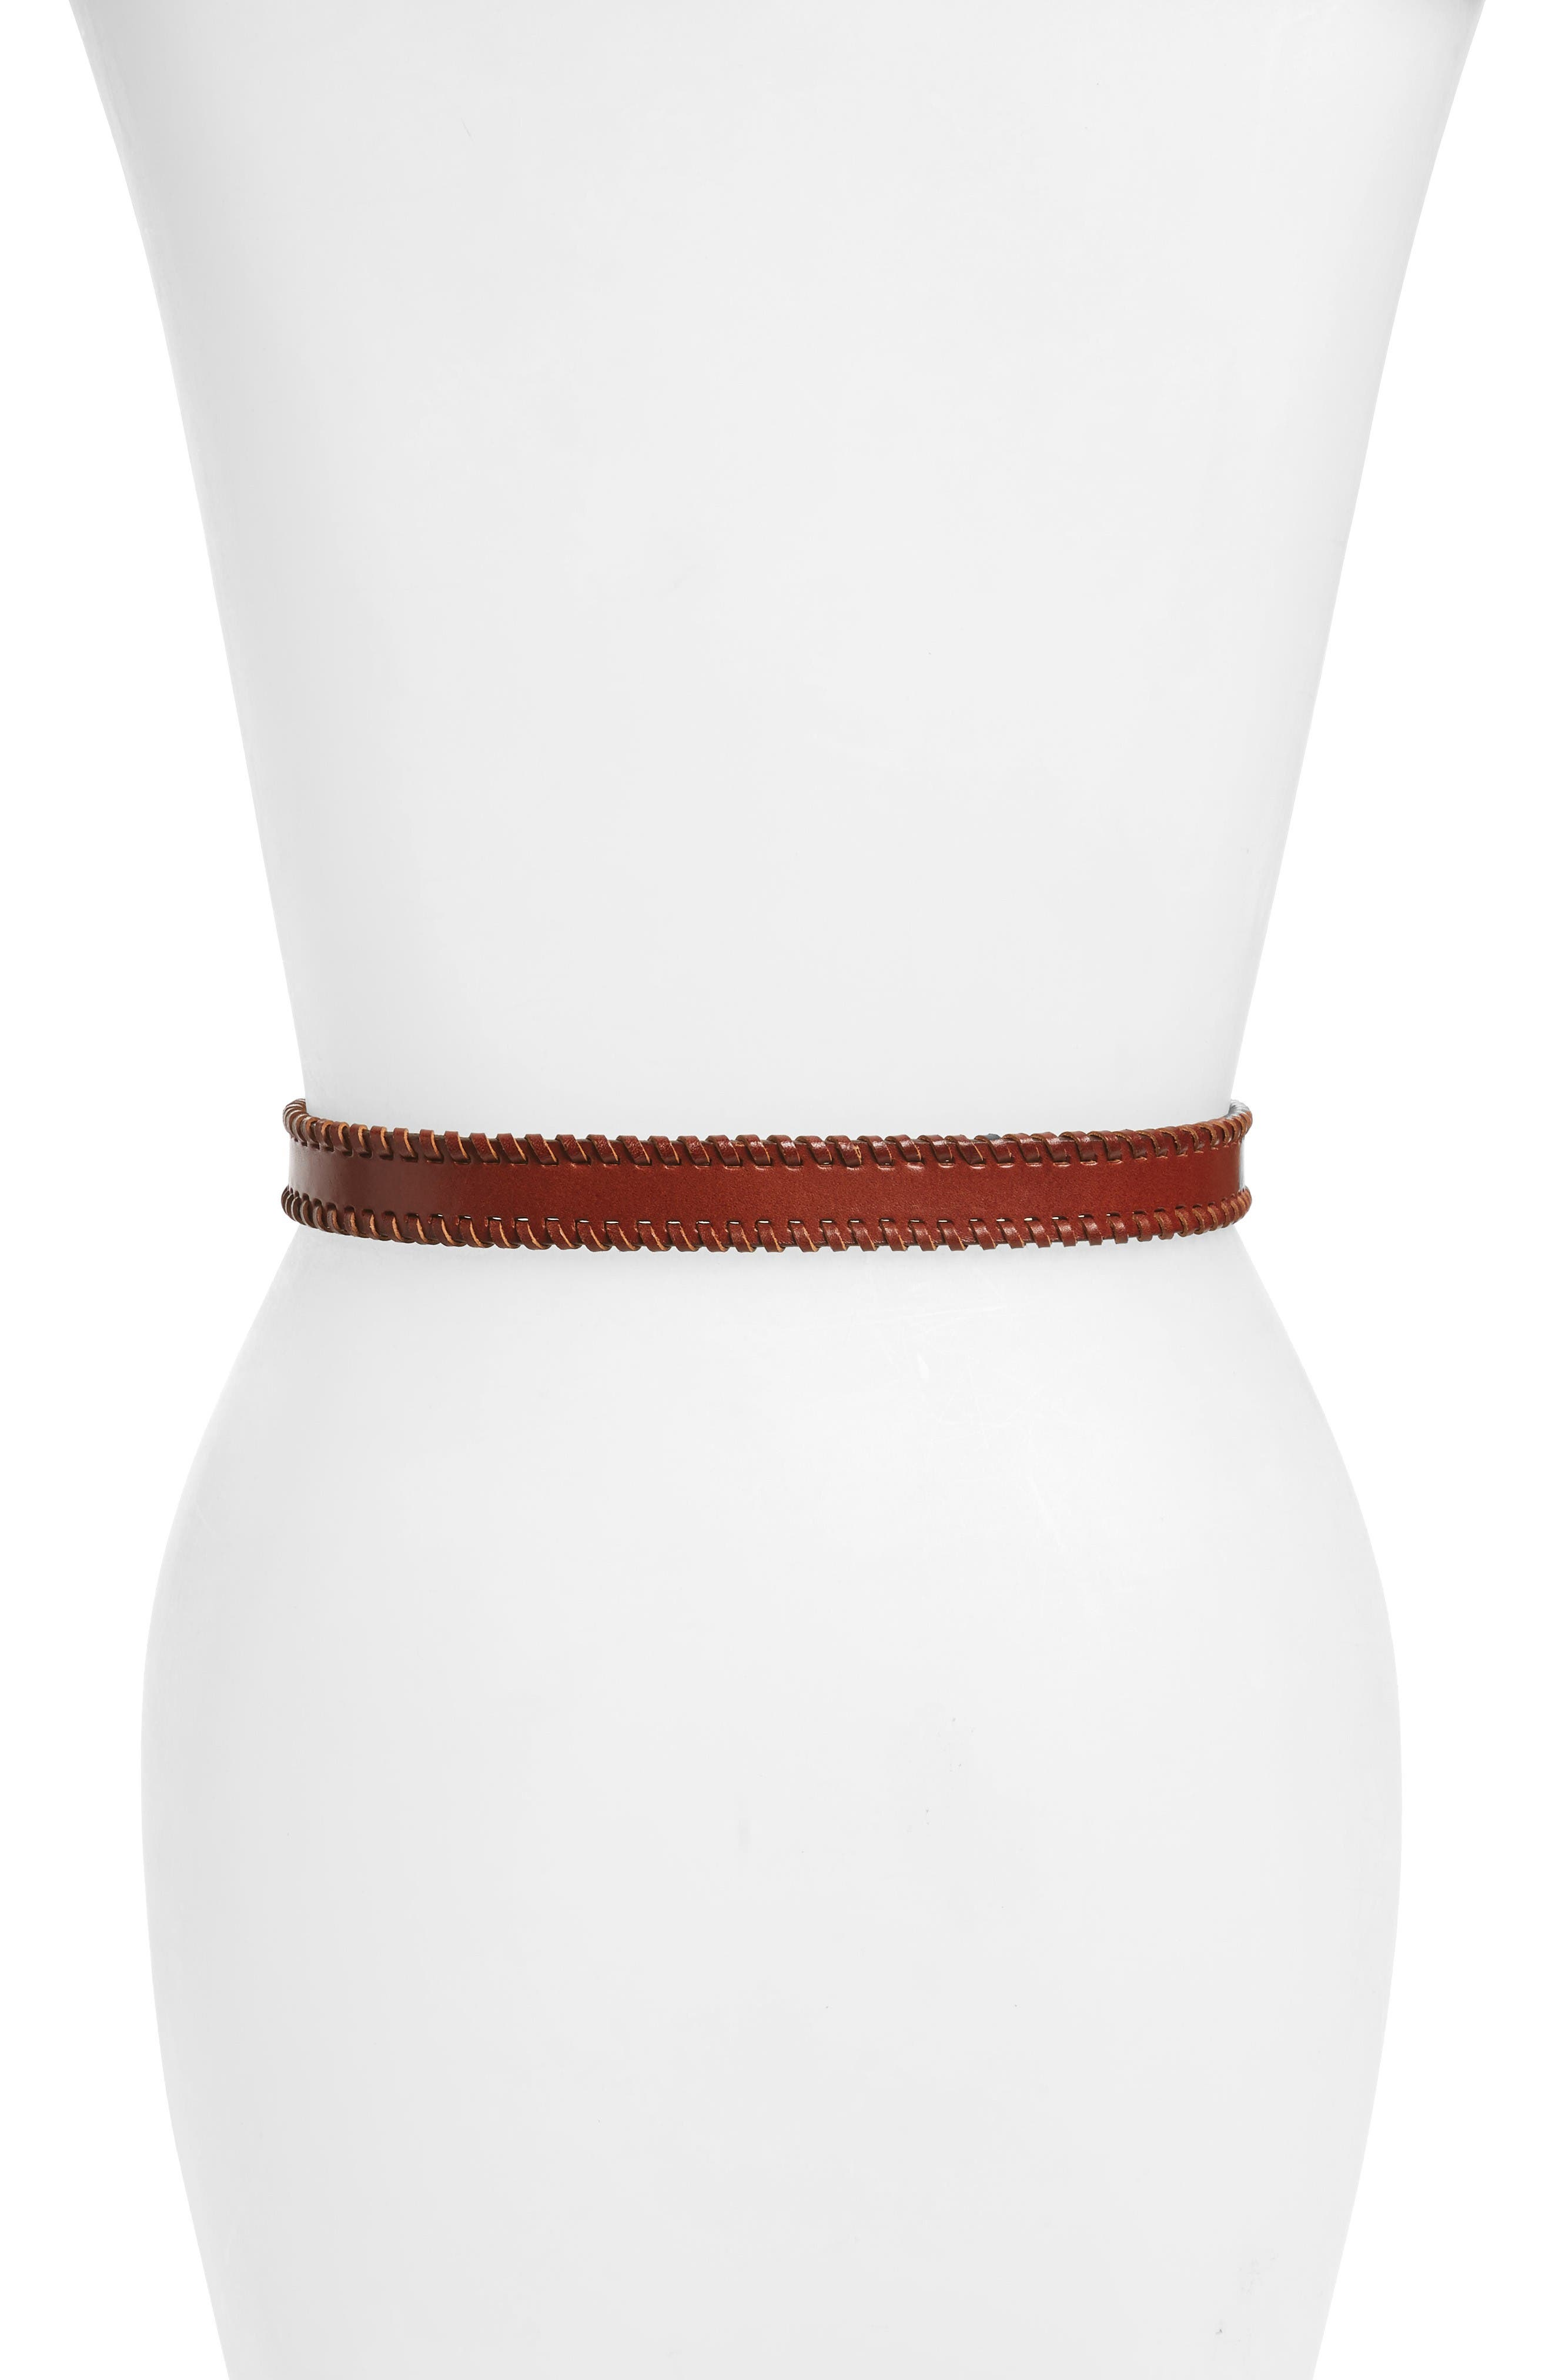 Whipstitched Western Leather Belt,                             Alternate thumbnail 2, color,                             Luggage